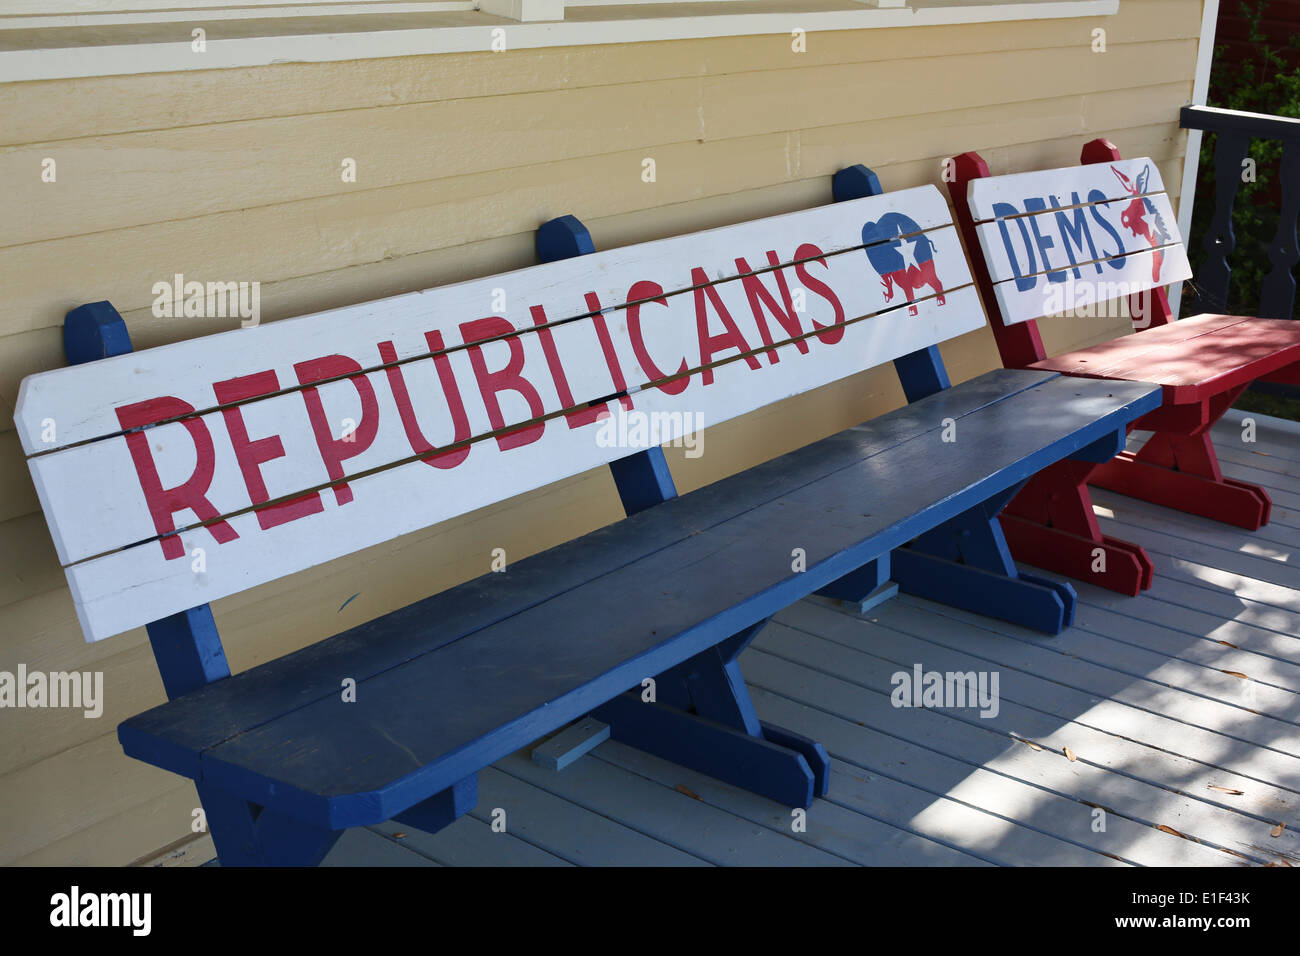 Humorous benches making a pro-Republican statement, at Red Oak II in Carthage, Missouri. - Stock Image